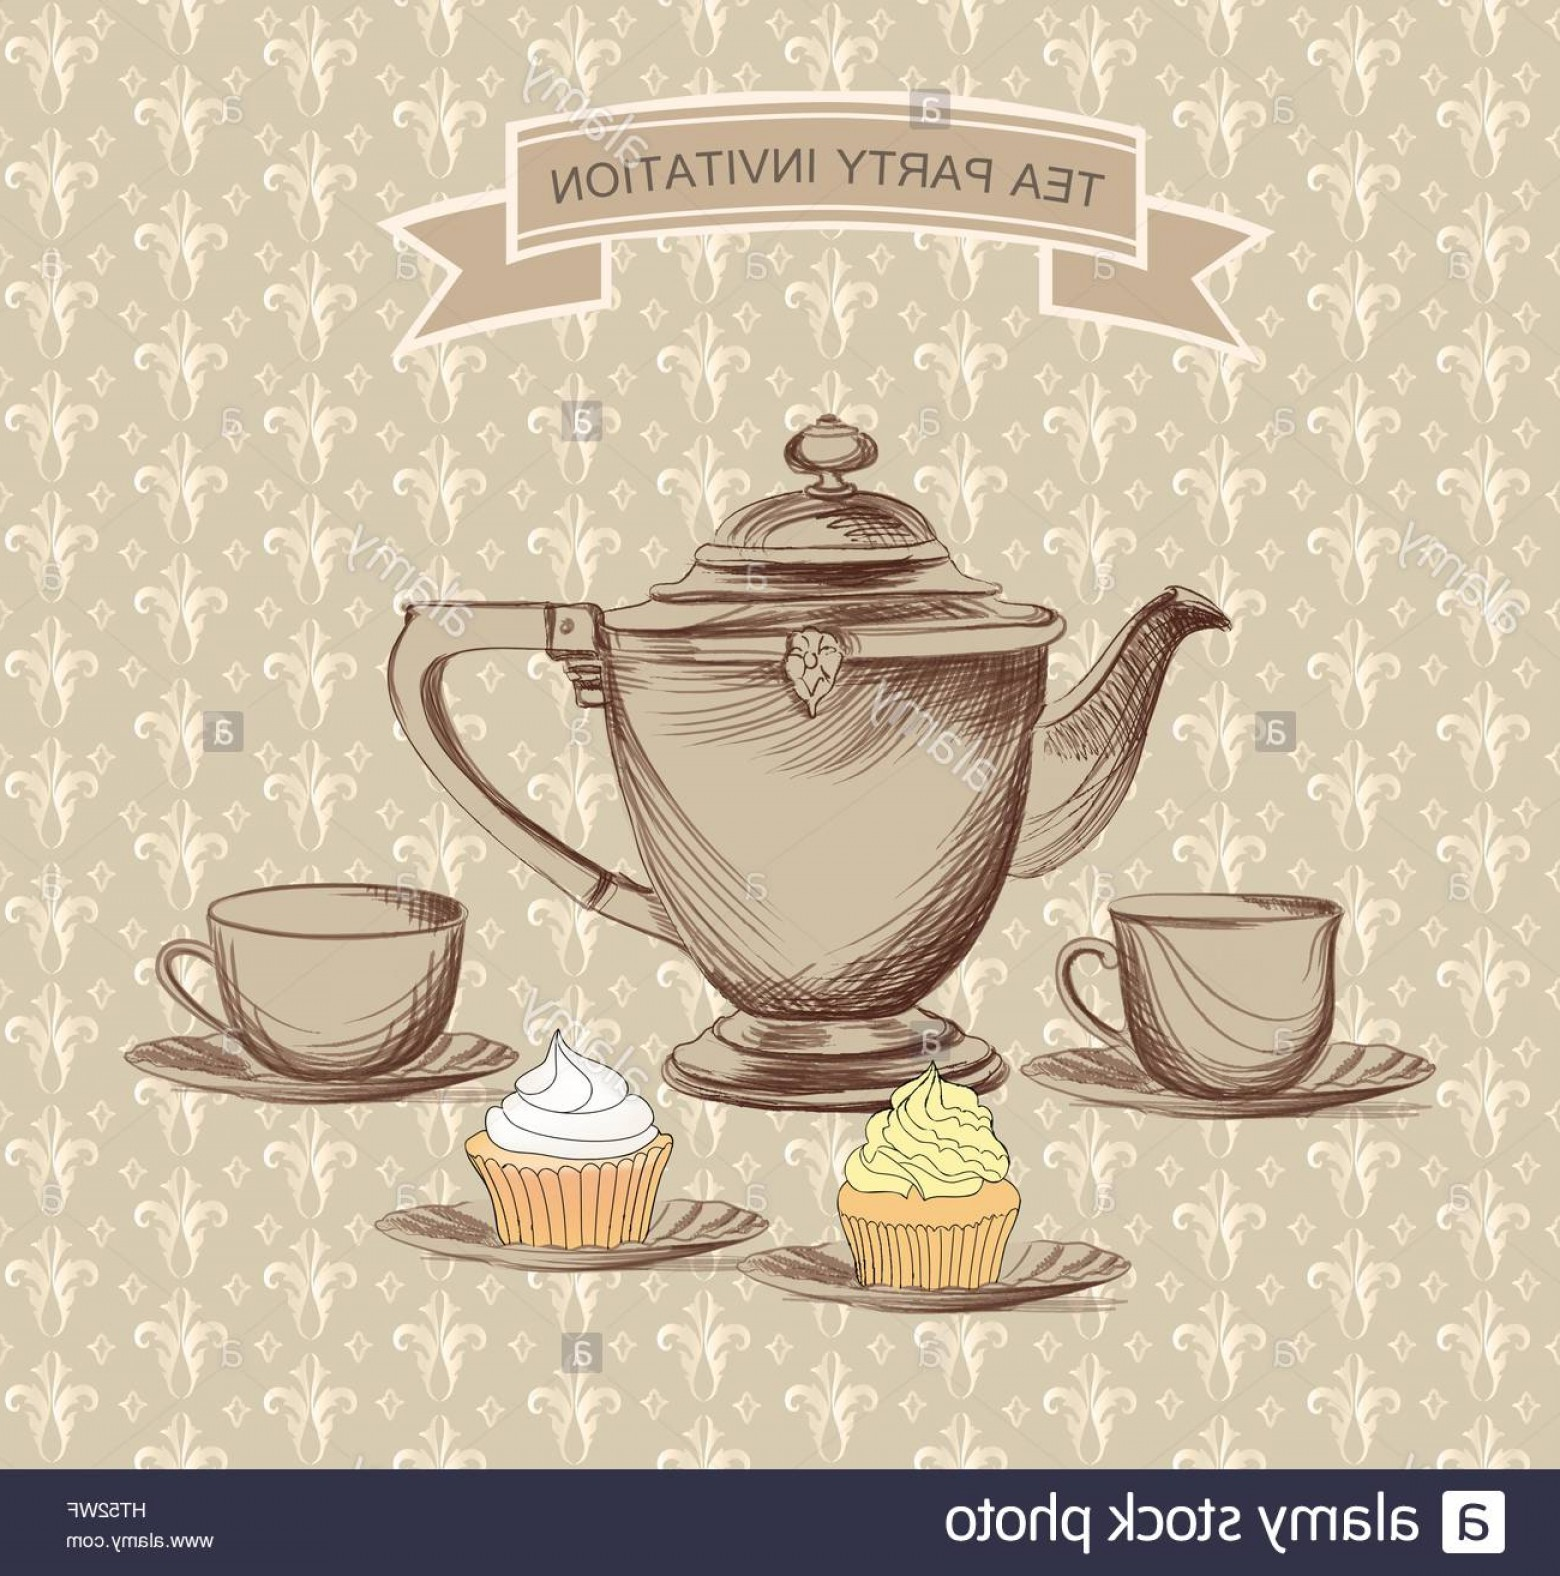 Vintage Tea Cup Vector: Stock Photo Tea Cup Pot Kettle Retro Card Tea Time Vintage Label Set Hot Drinks